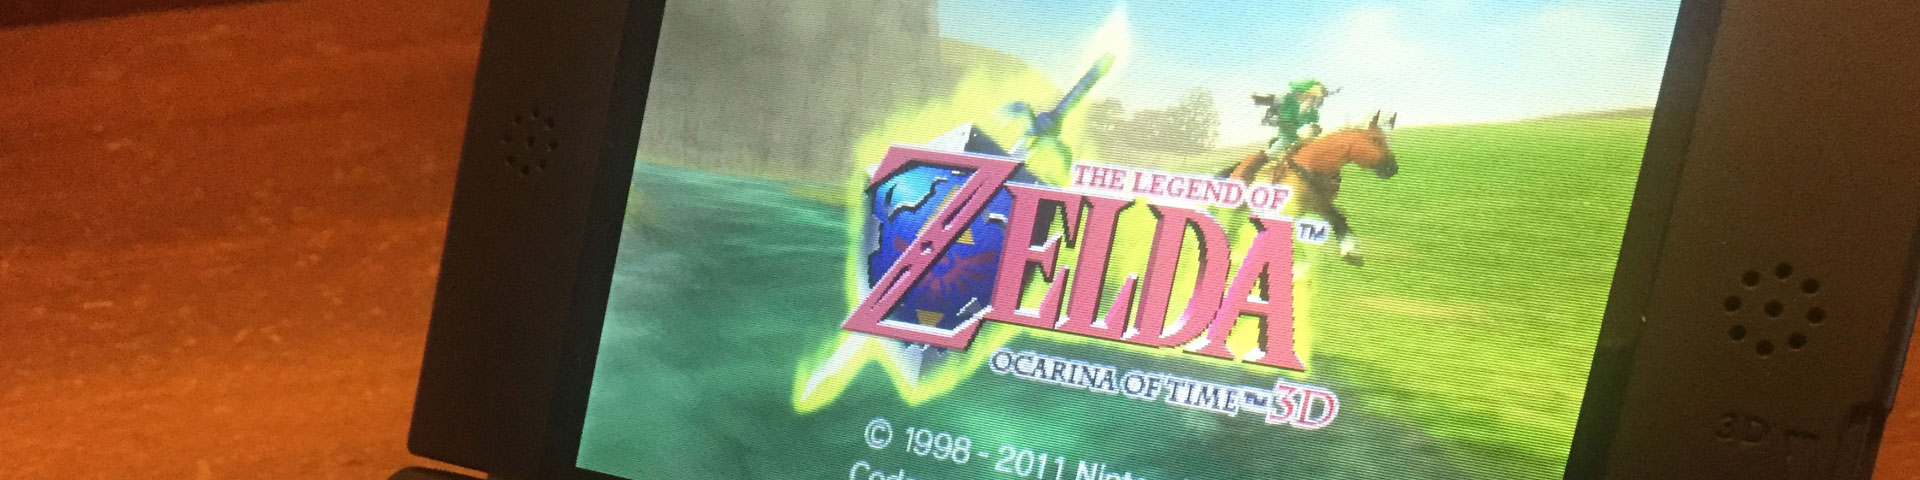 A close-up shot of the Legend of Zelda: Ocarina of Time load screen on a Nintendo 3DS handheld.